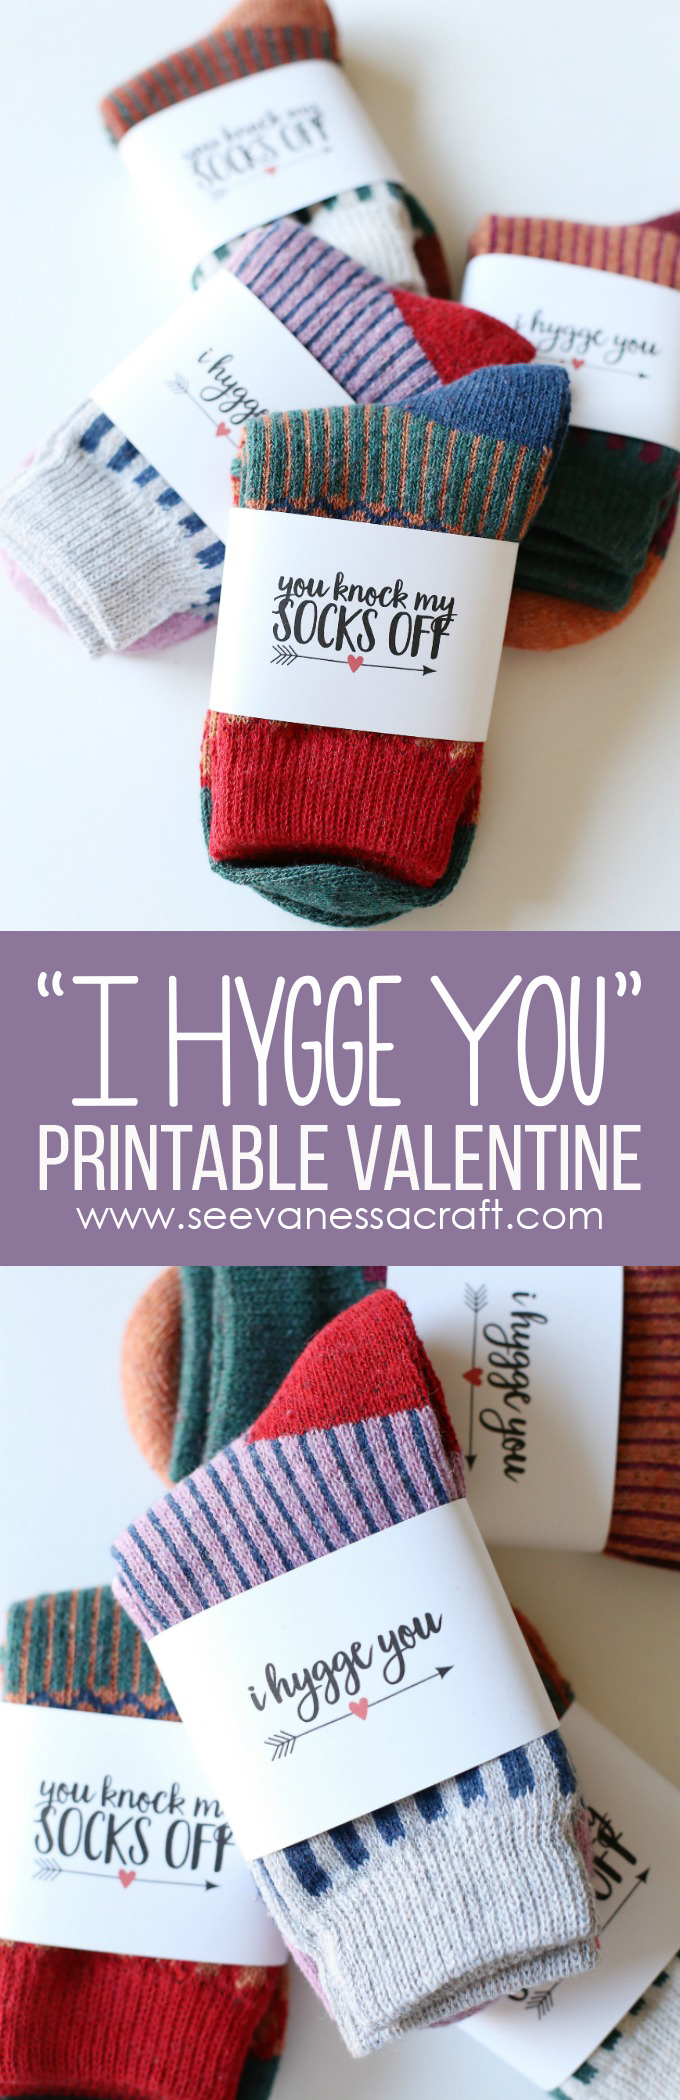 Hygge Inspired Gift Idea